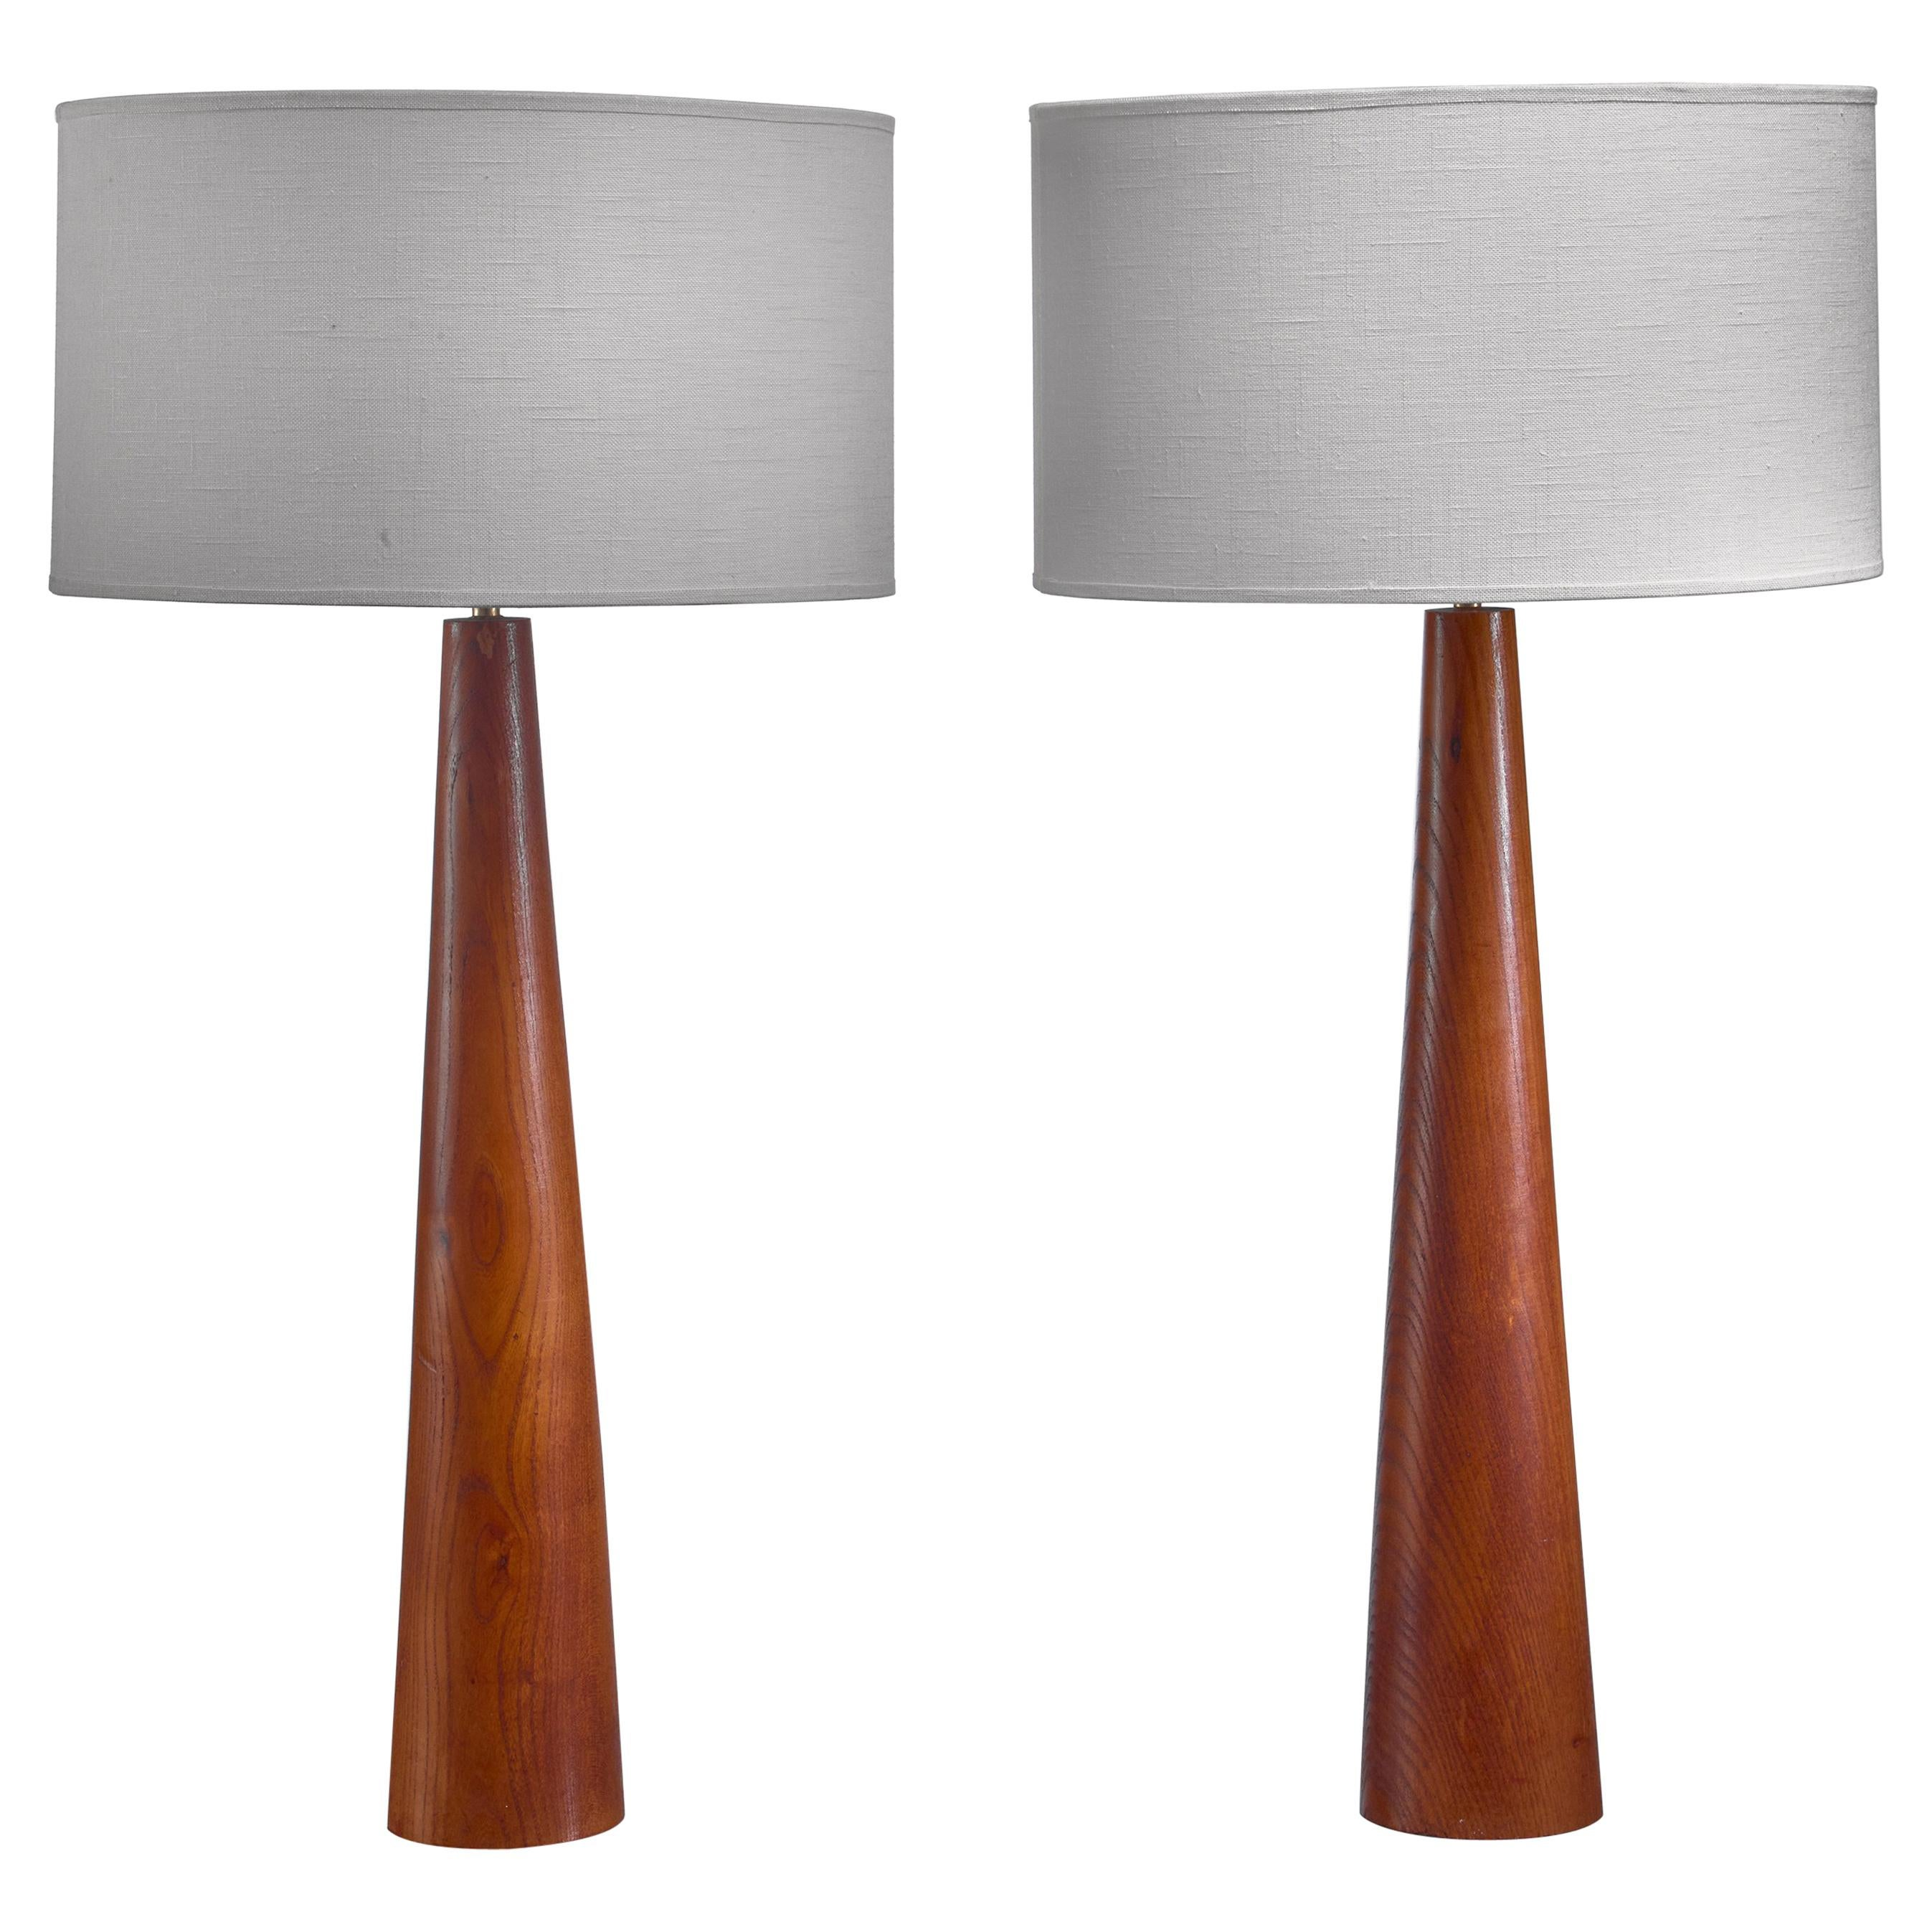 Beau Pair Of Conical Wooden Table Lamps, Sweden, 1960s